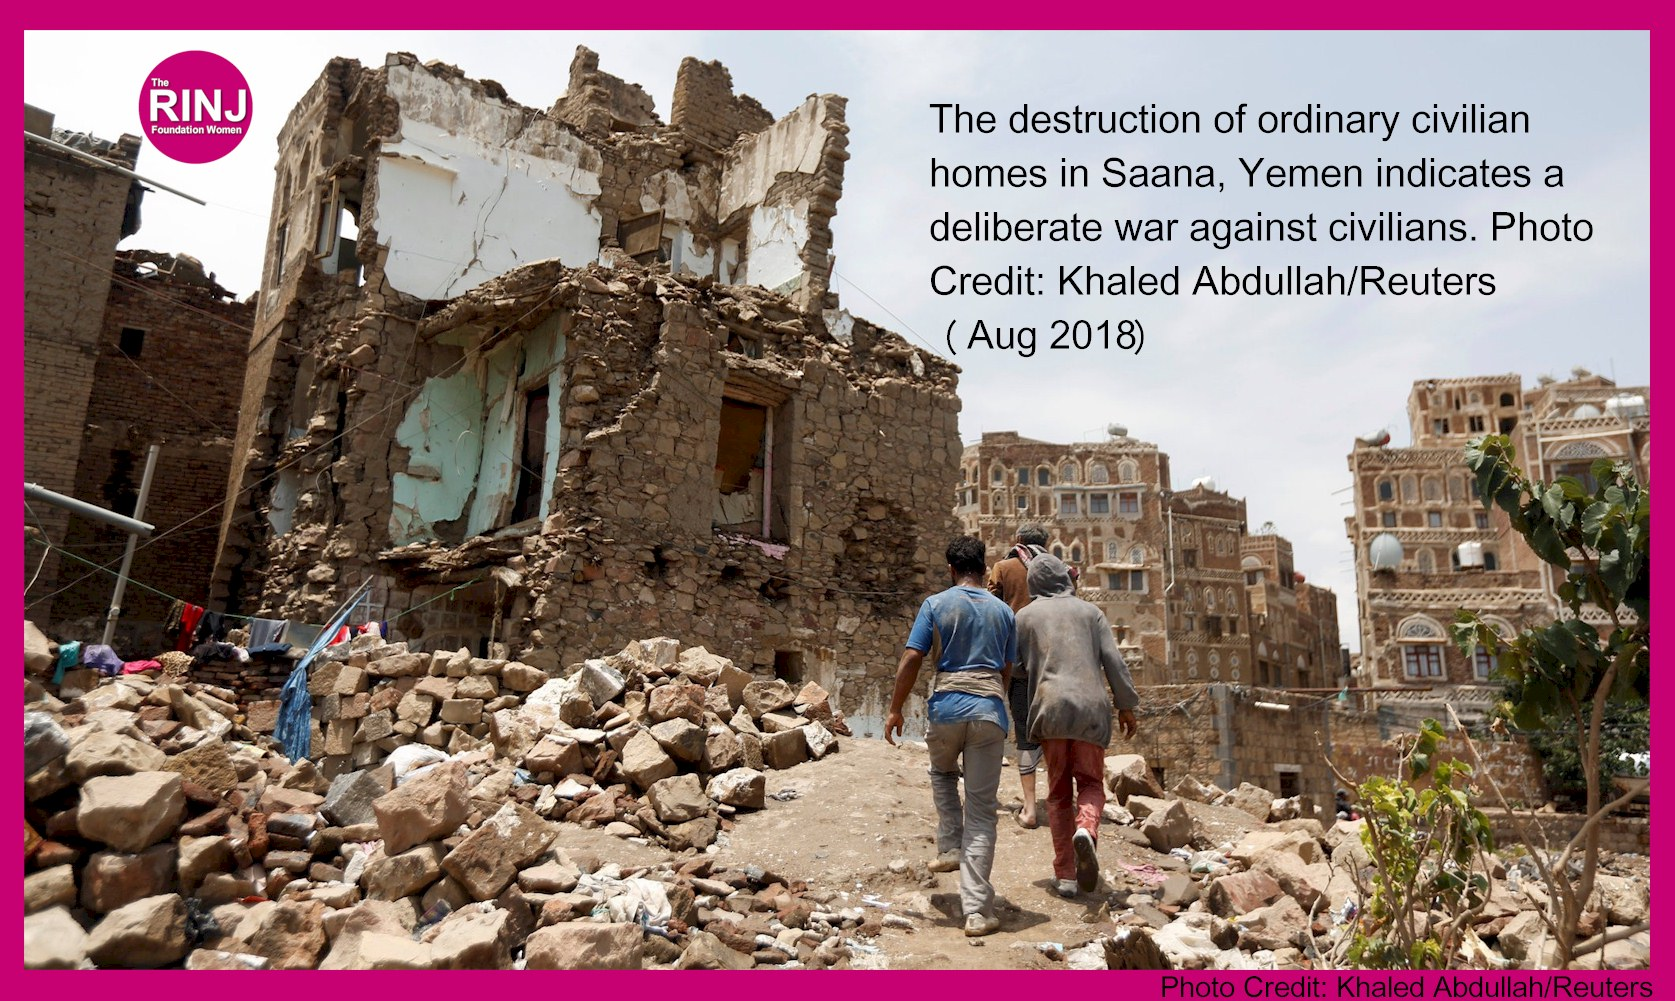 The destruction of ordinary civilian homes in Saana, Yemen indicates a deliberate war against civilians. Photo Credit: Khaled Abdullah/Reuters - Aug 201